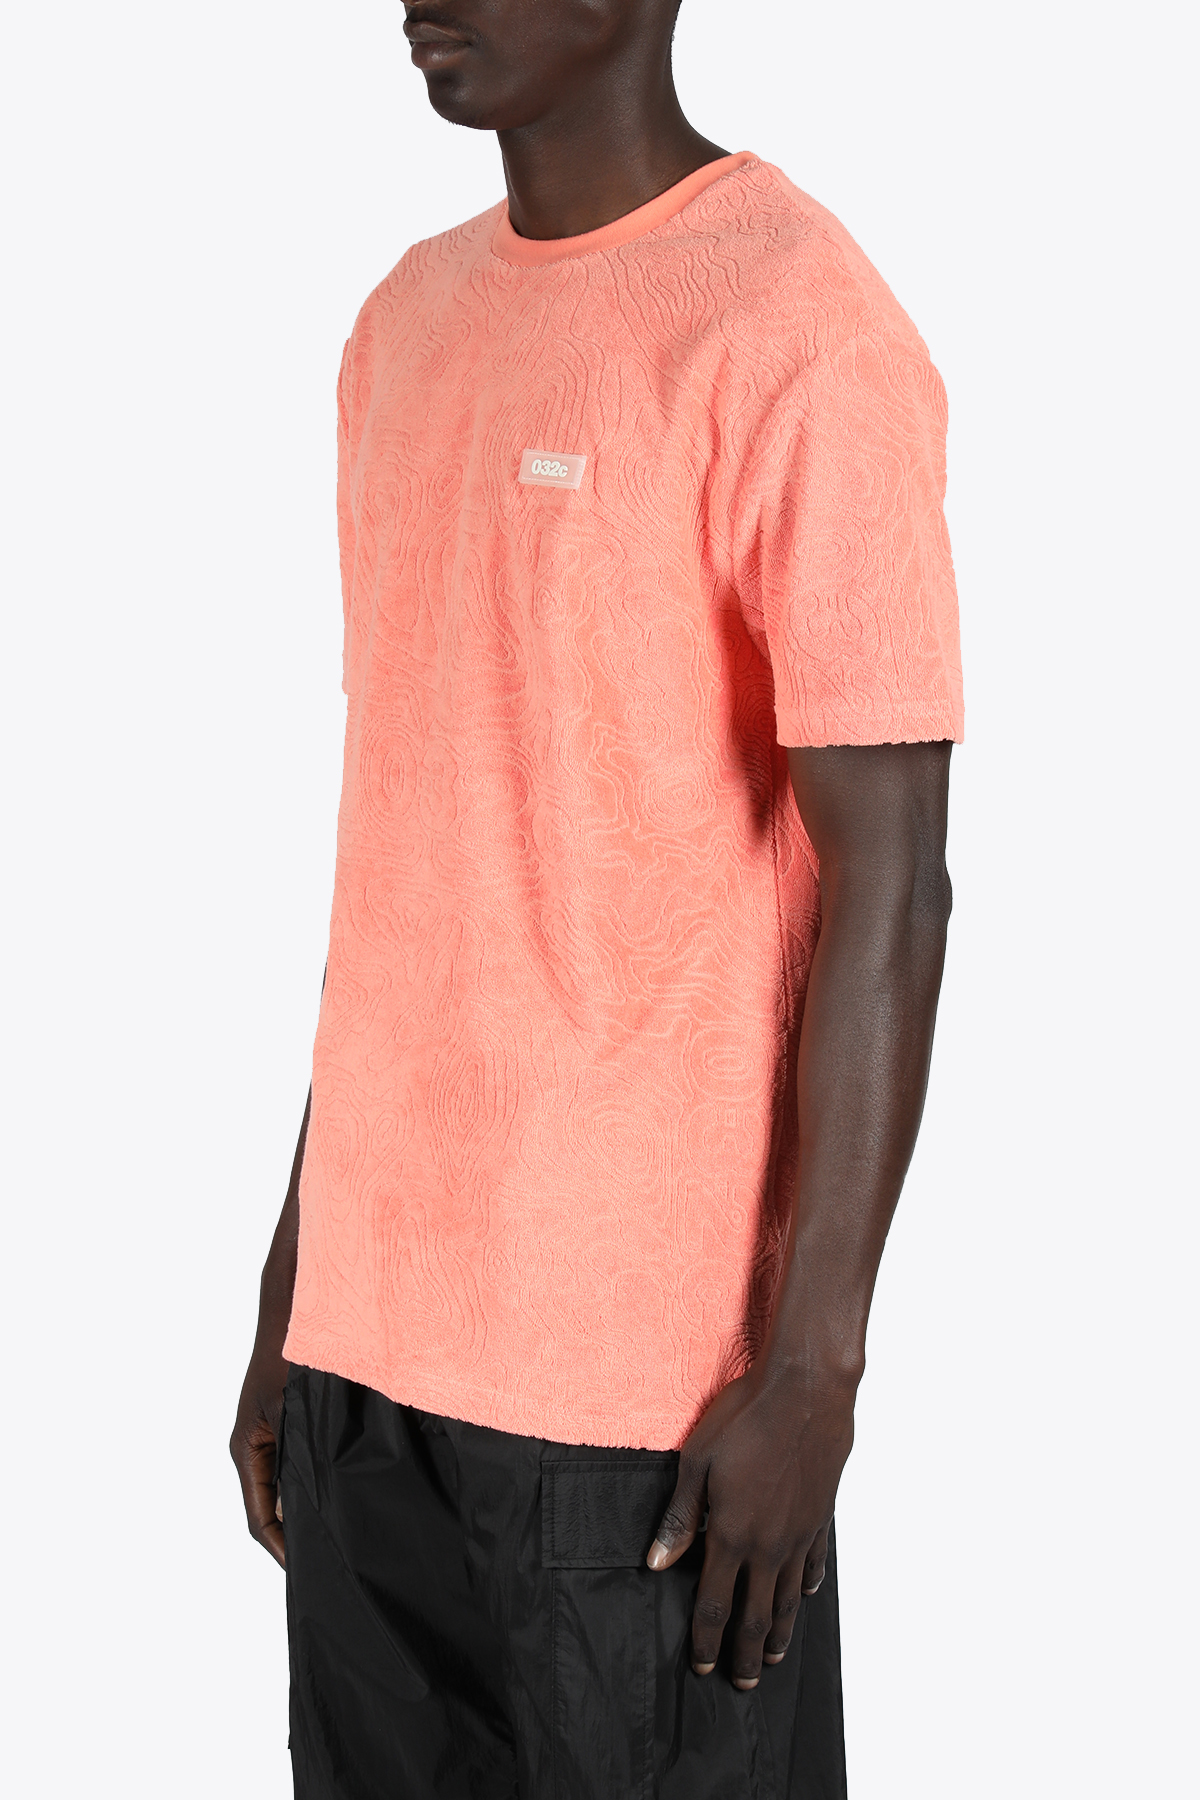 TOPOS SHAVES TERRY T-SHIRT 032C | 8 | SS21-C-1011 TOPOS SHAVES TERRY T-SHIRTCORAL